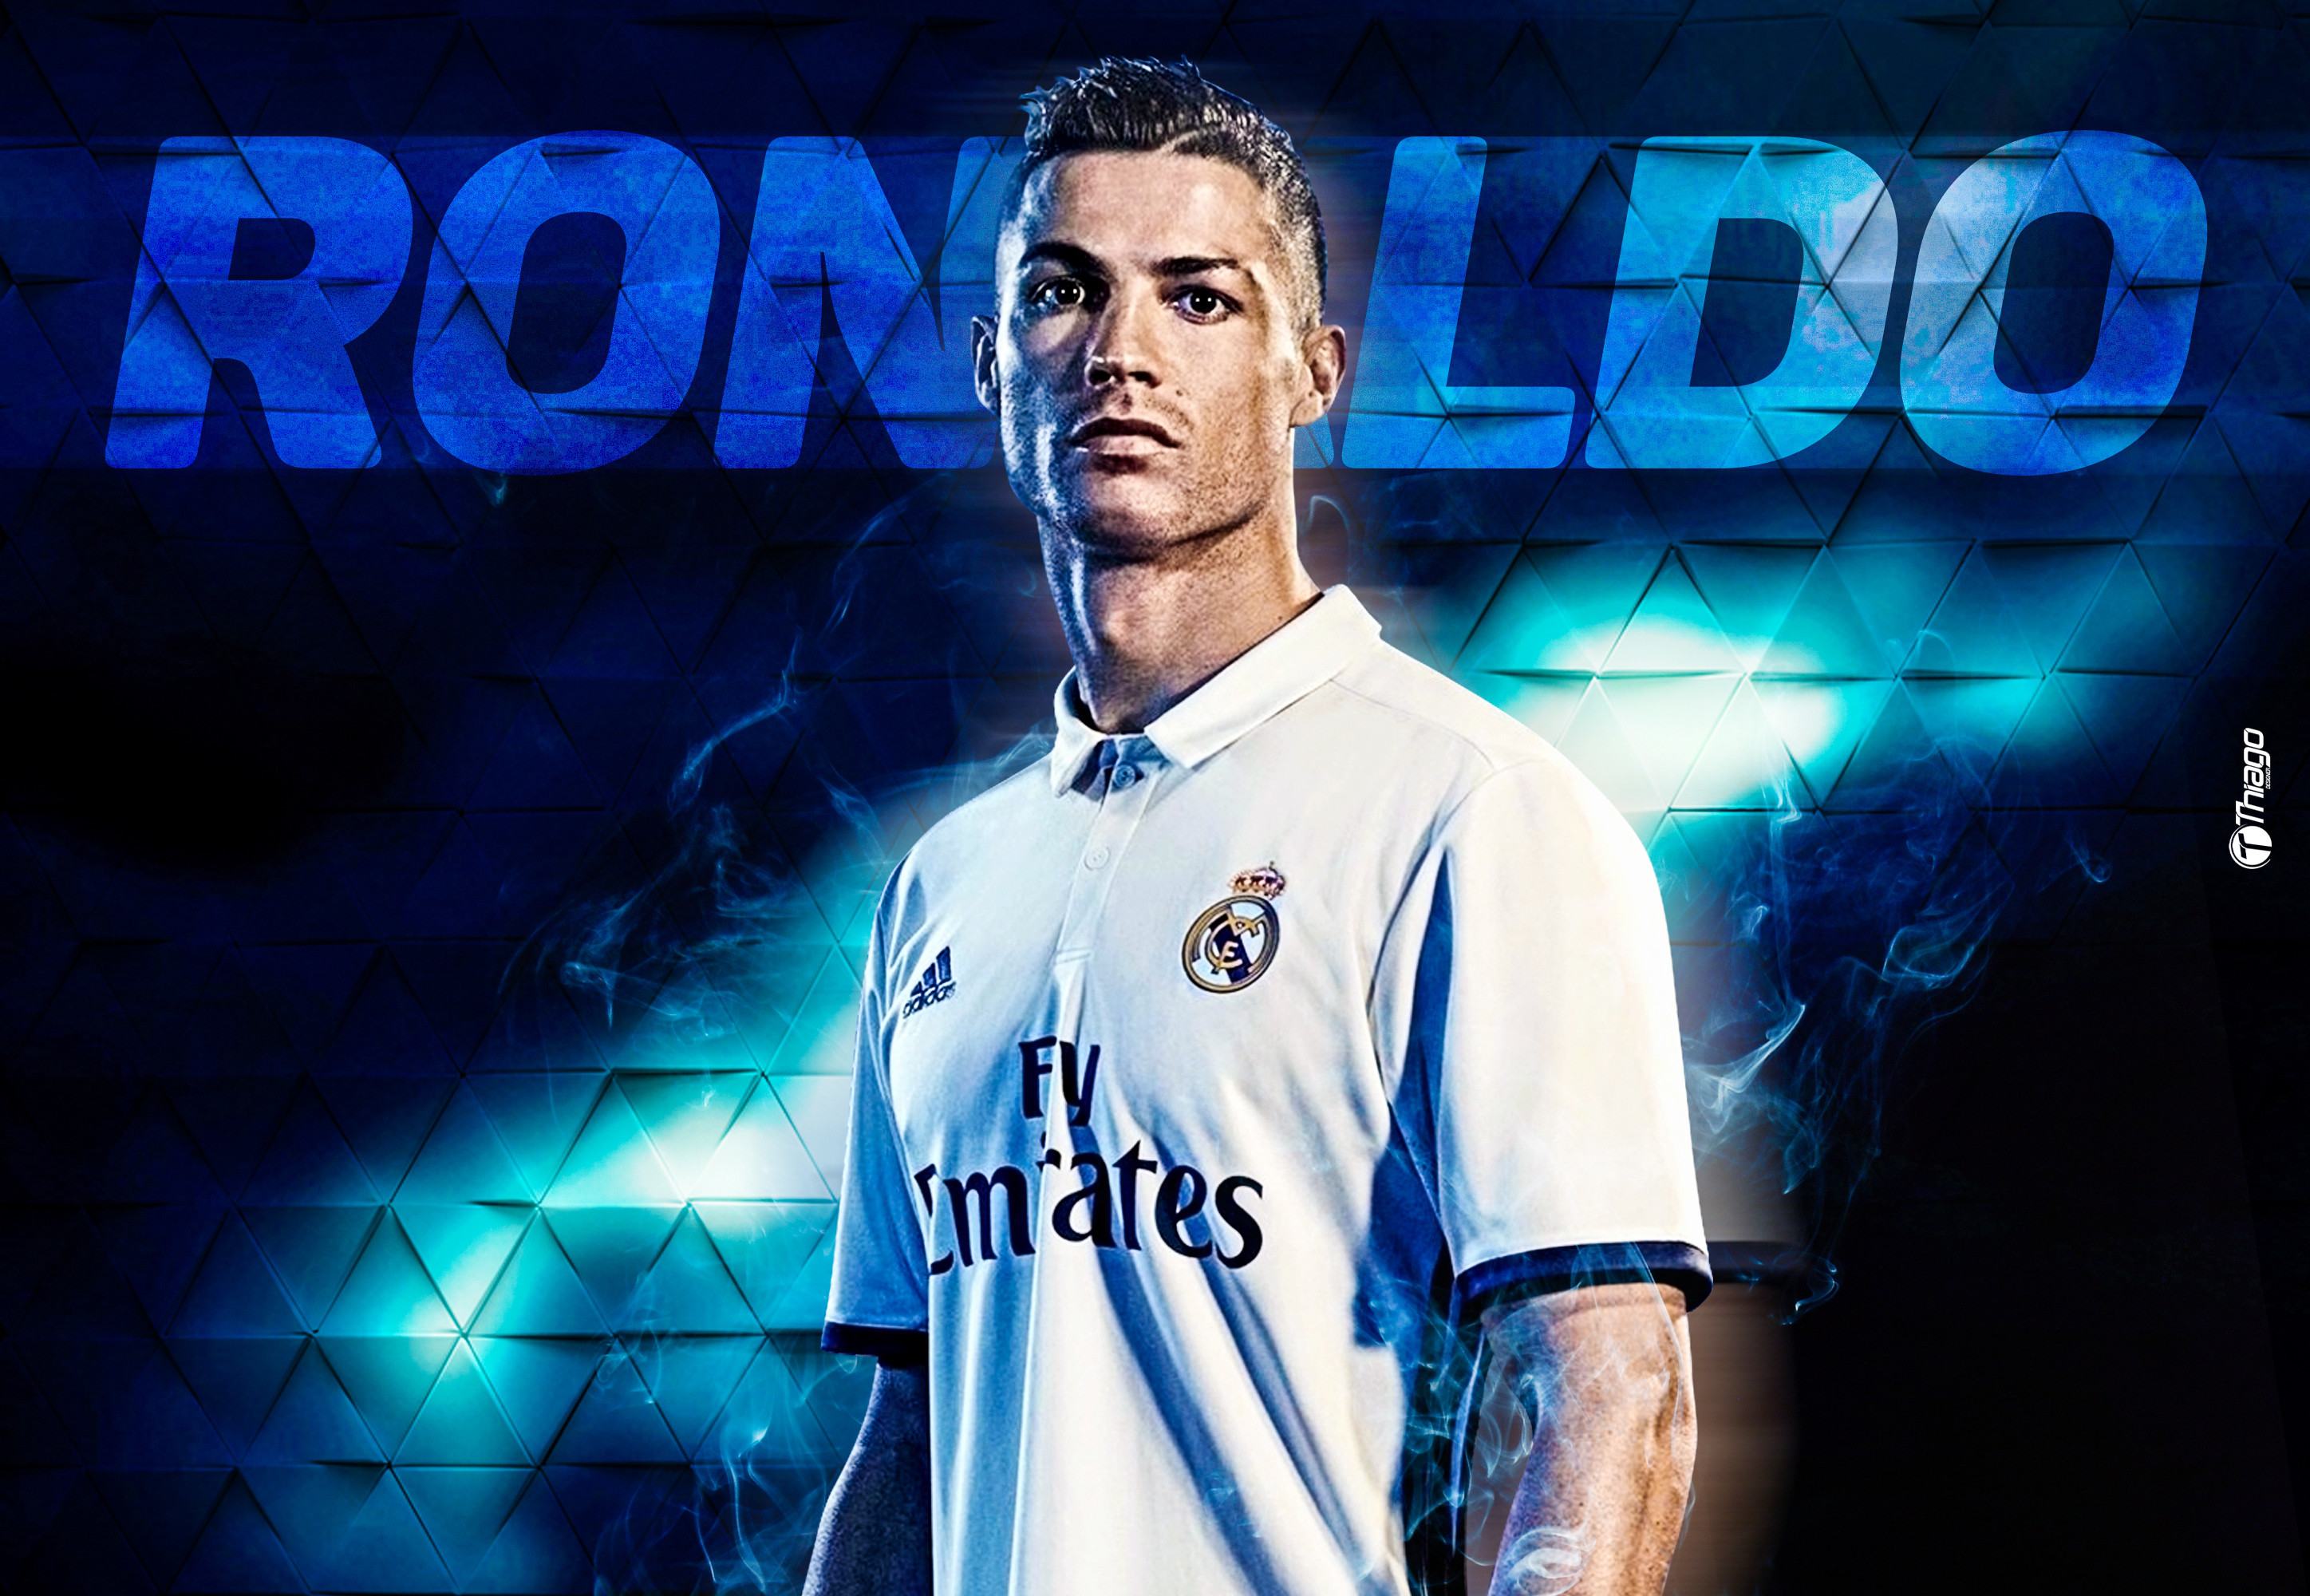 Cr7 wallpapers terbaru 2018 59 background pictures - Hd photos of cr7 ...